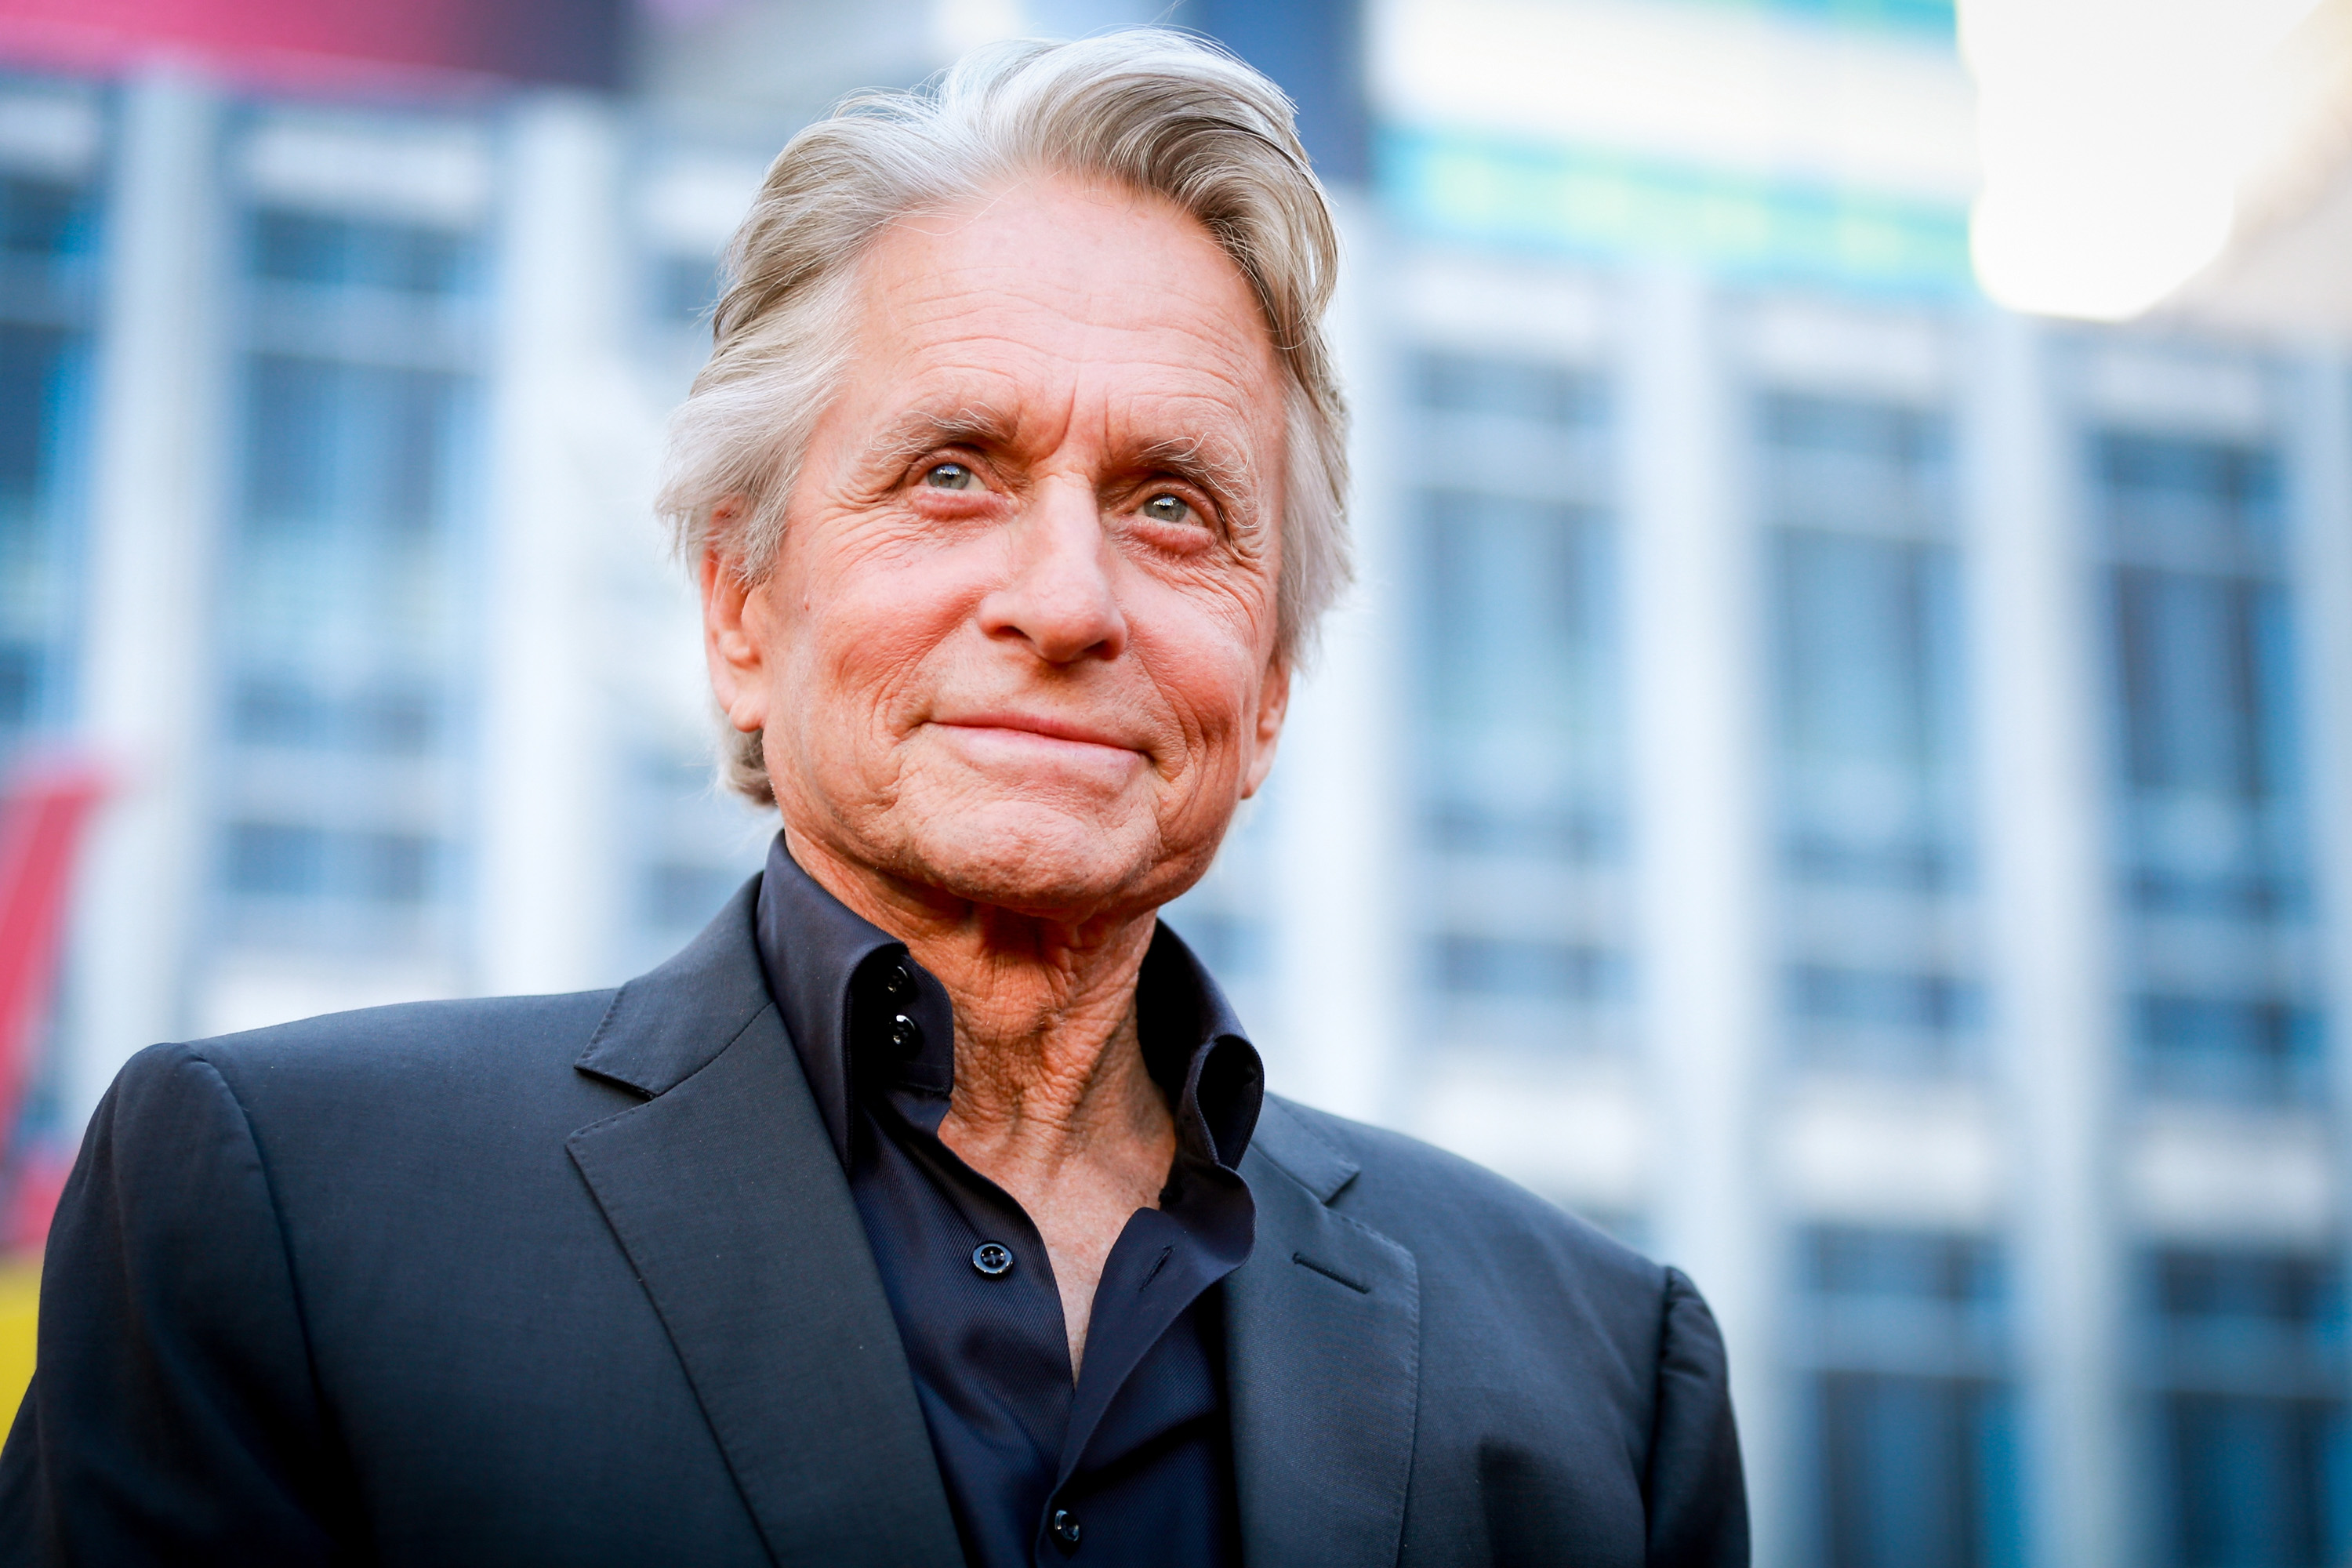 Michael Douglas attends the premiere of Disney And Marvel's 'Ant-Man And The Wasp' on June 25, 2018 in Hollywood, California.